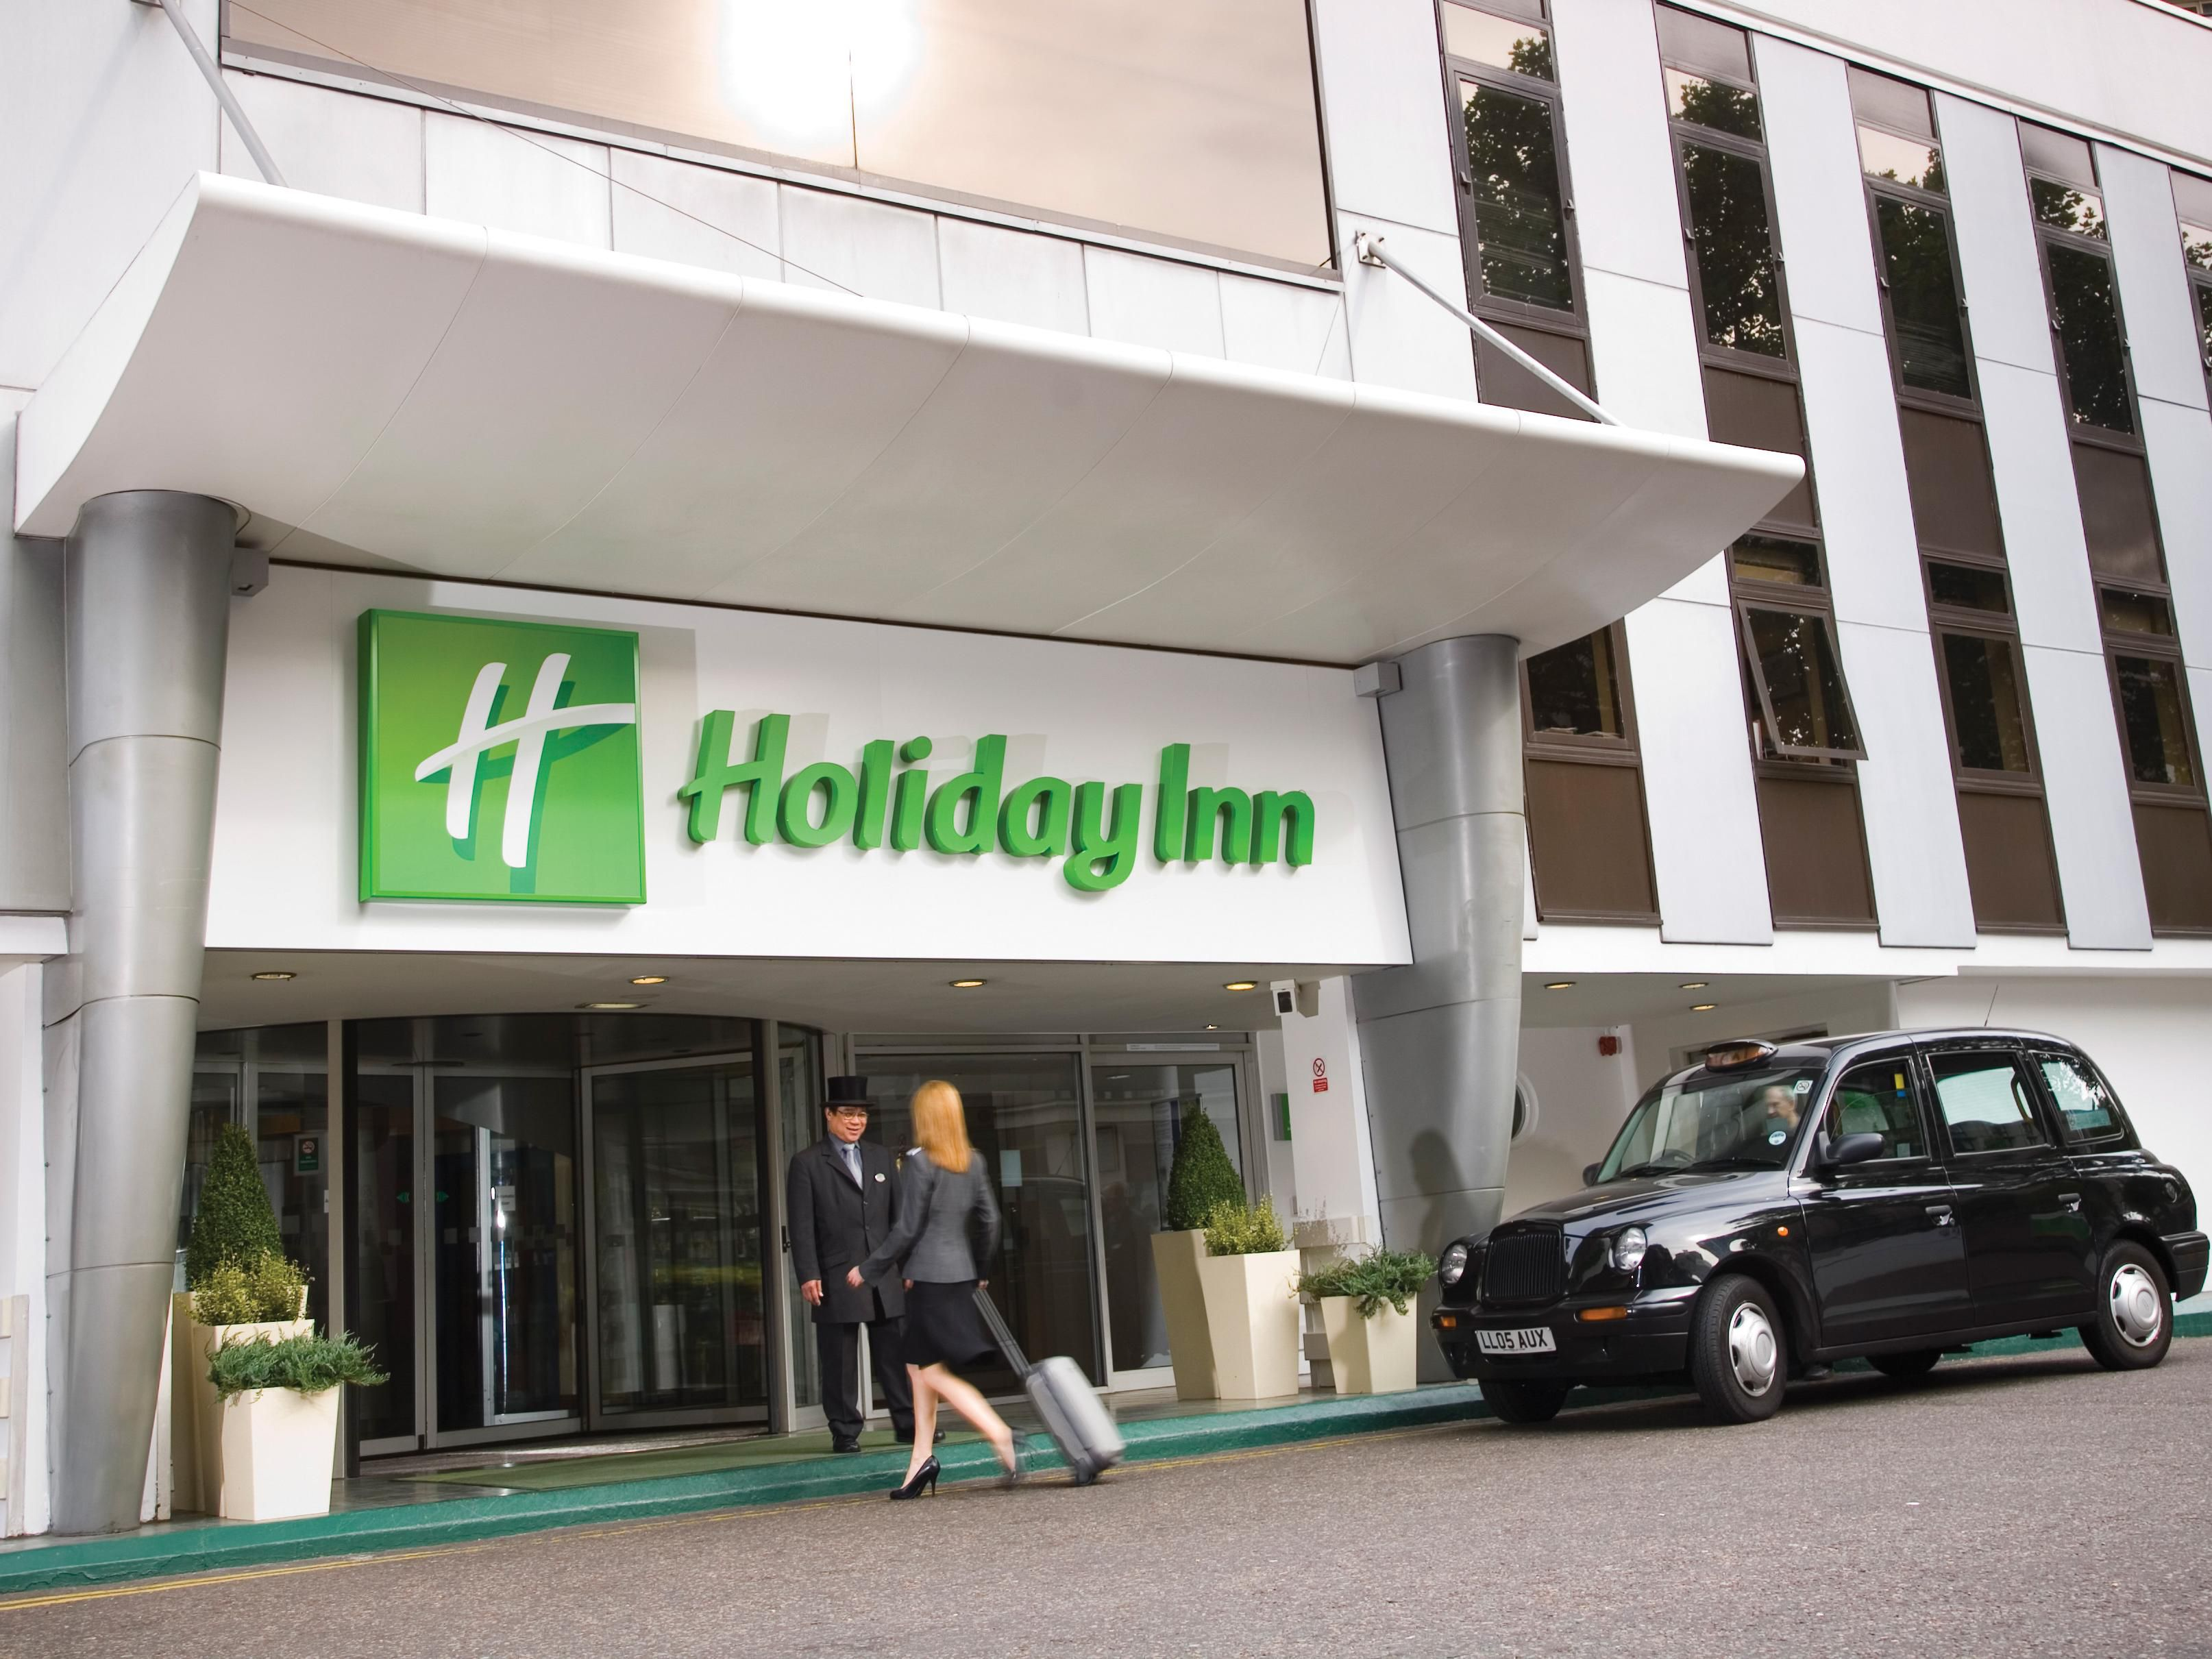 Hotel Holiday Inn London Gloucester Road